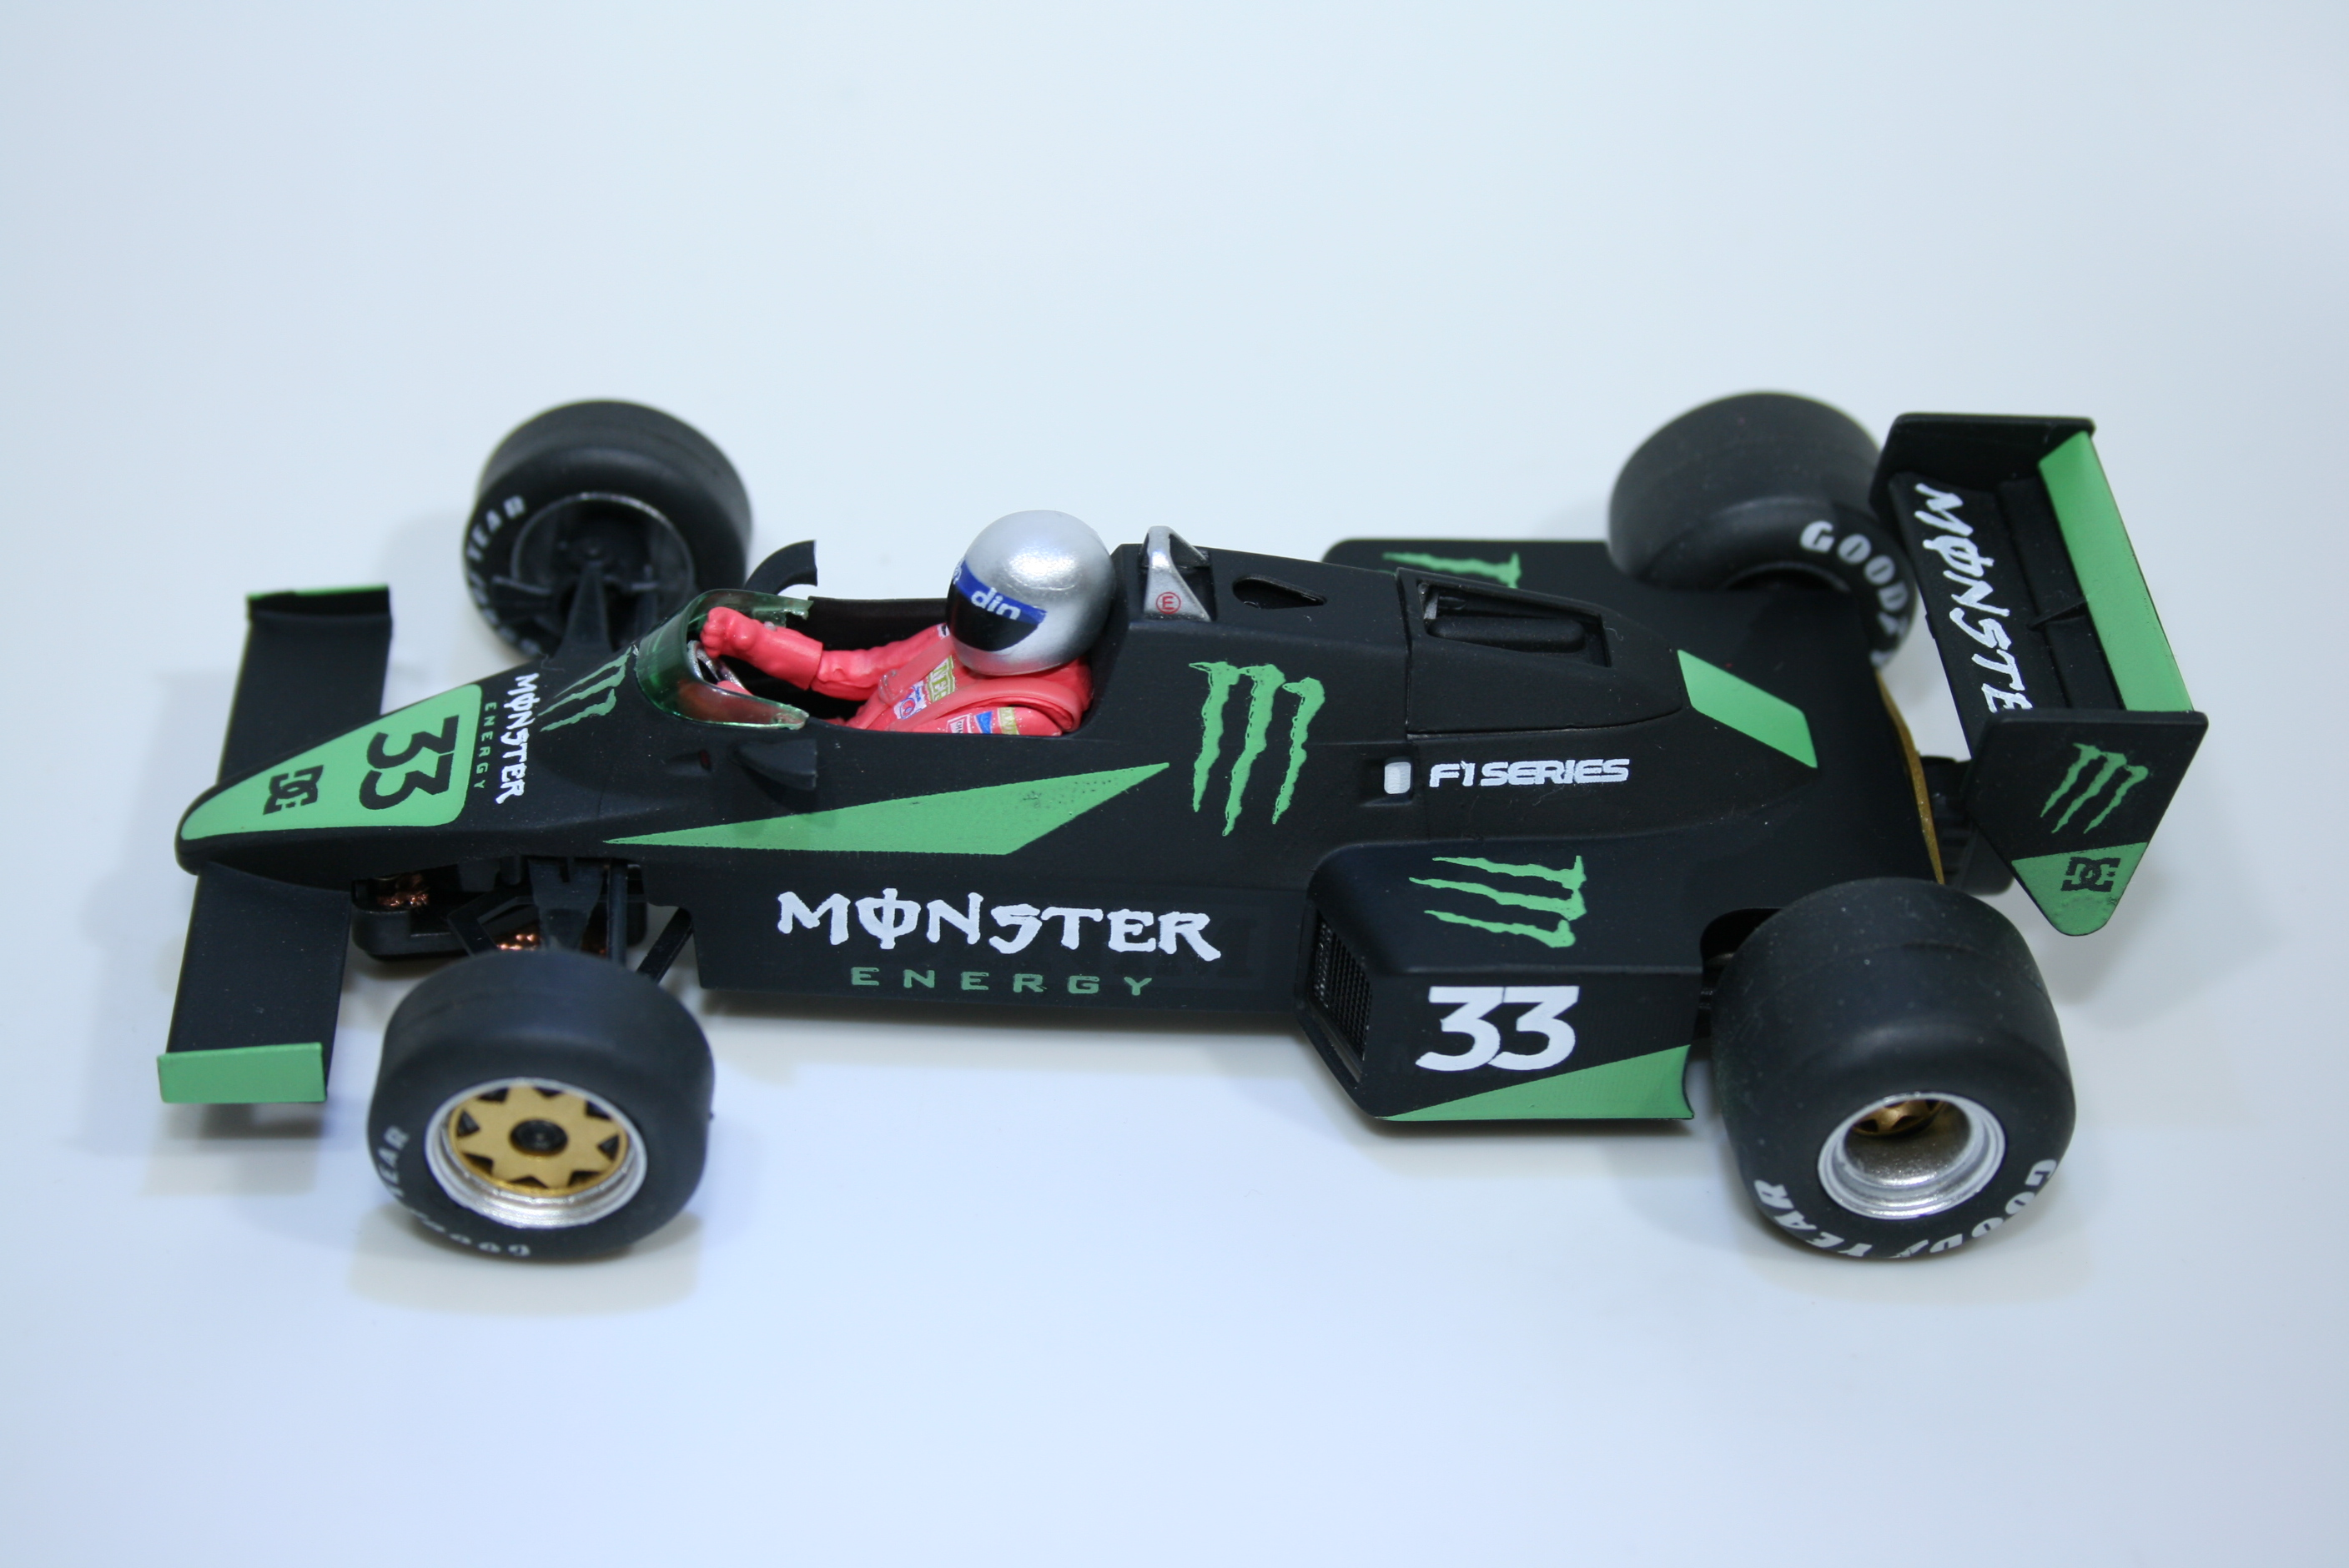 1035 Williams FW08C 1983 A Senna FLY Monster Edition 40305 2018 Boxed